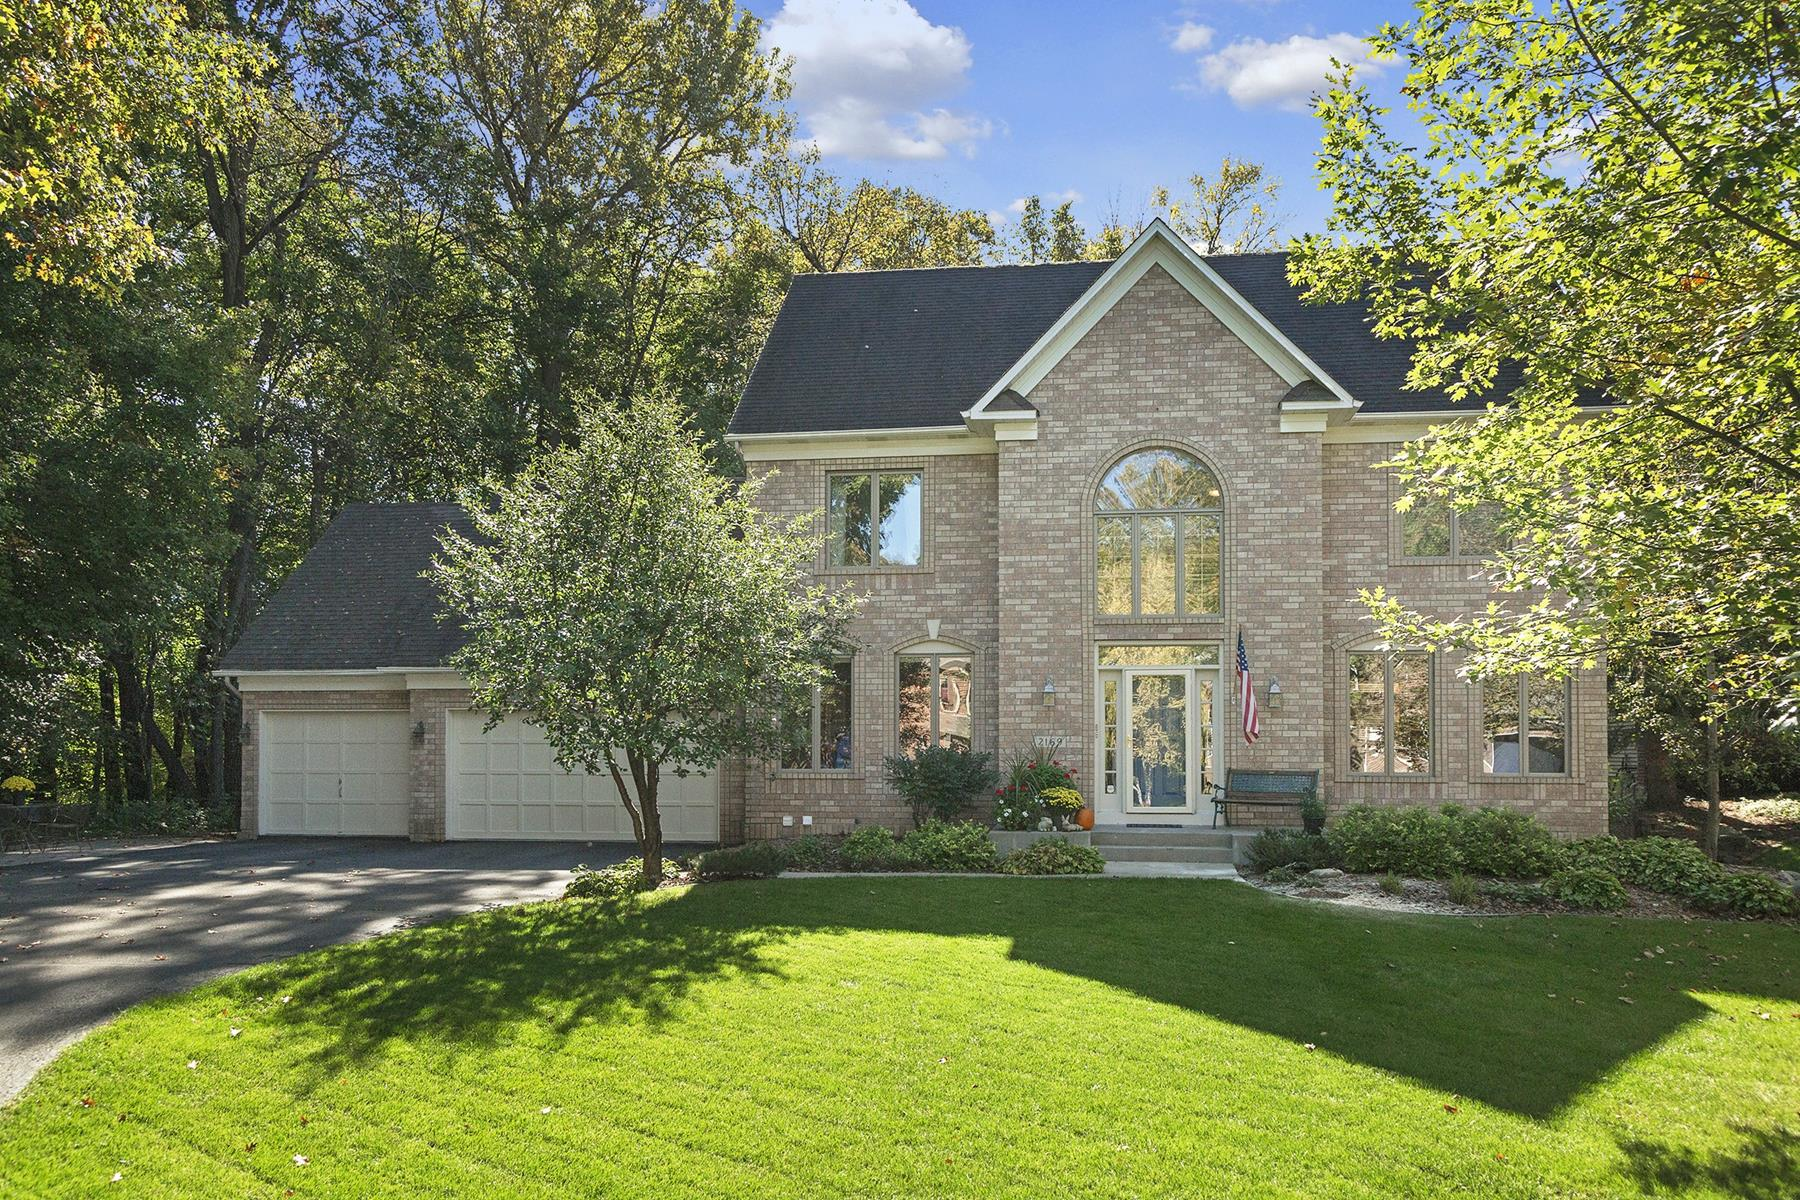 Single Family Home for Sale at 2169 Stone Creek Drive Chanhassen, Minnesota, 55317 United States